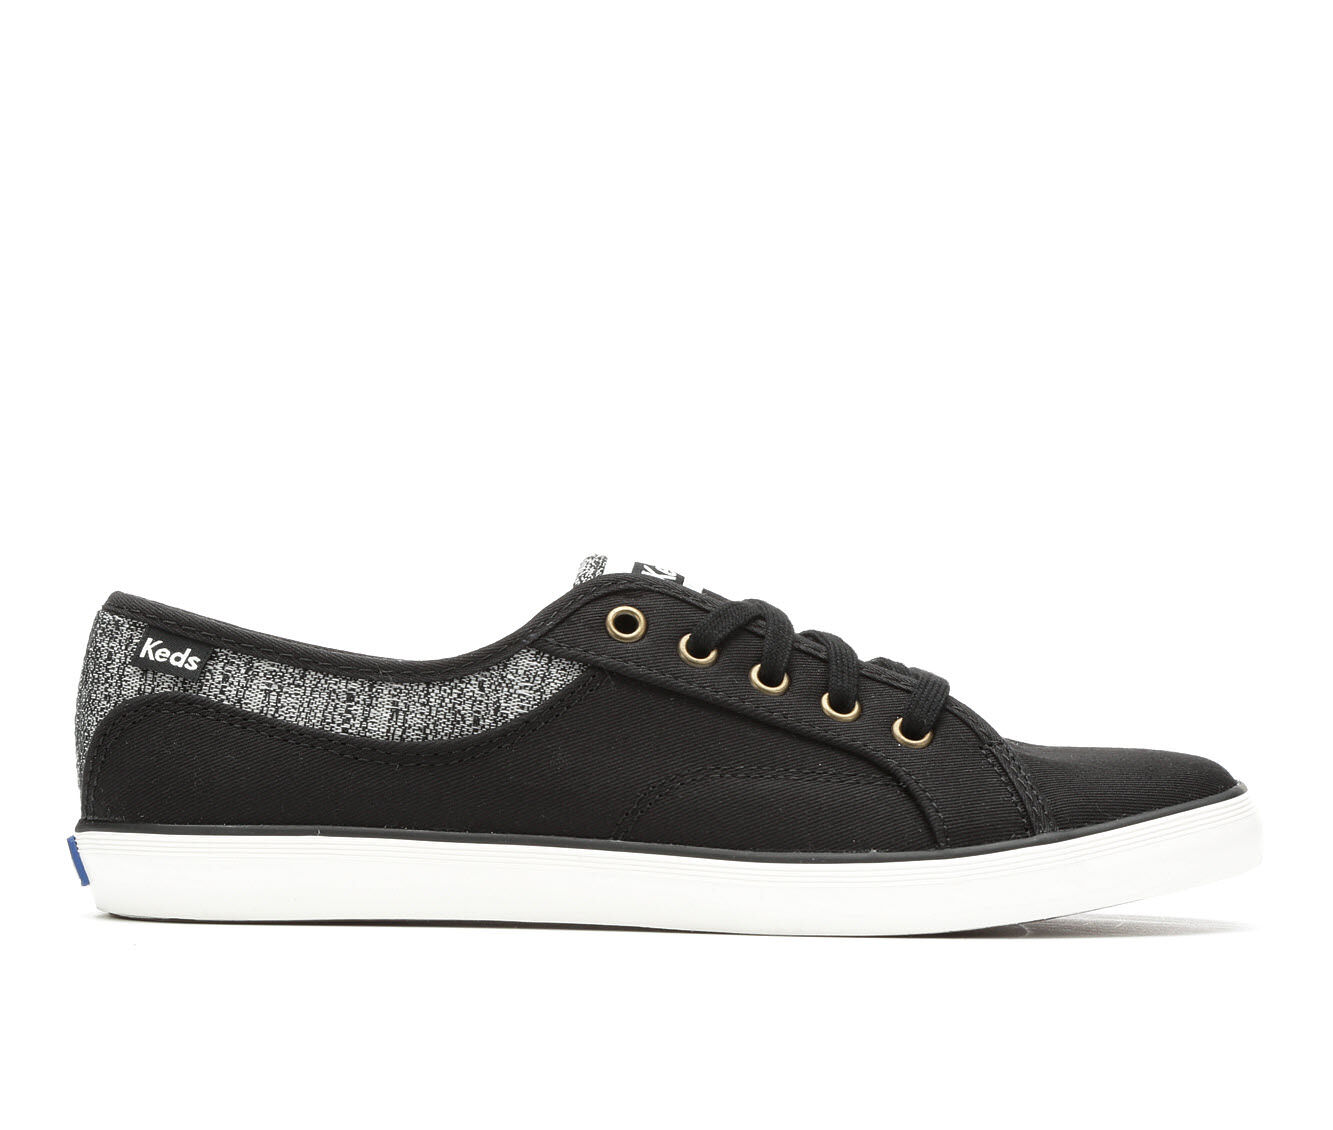 Women's Keds Coursa Knit Sneakers authentic for sale low price cheap price QmqIUBbo